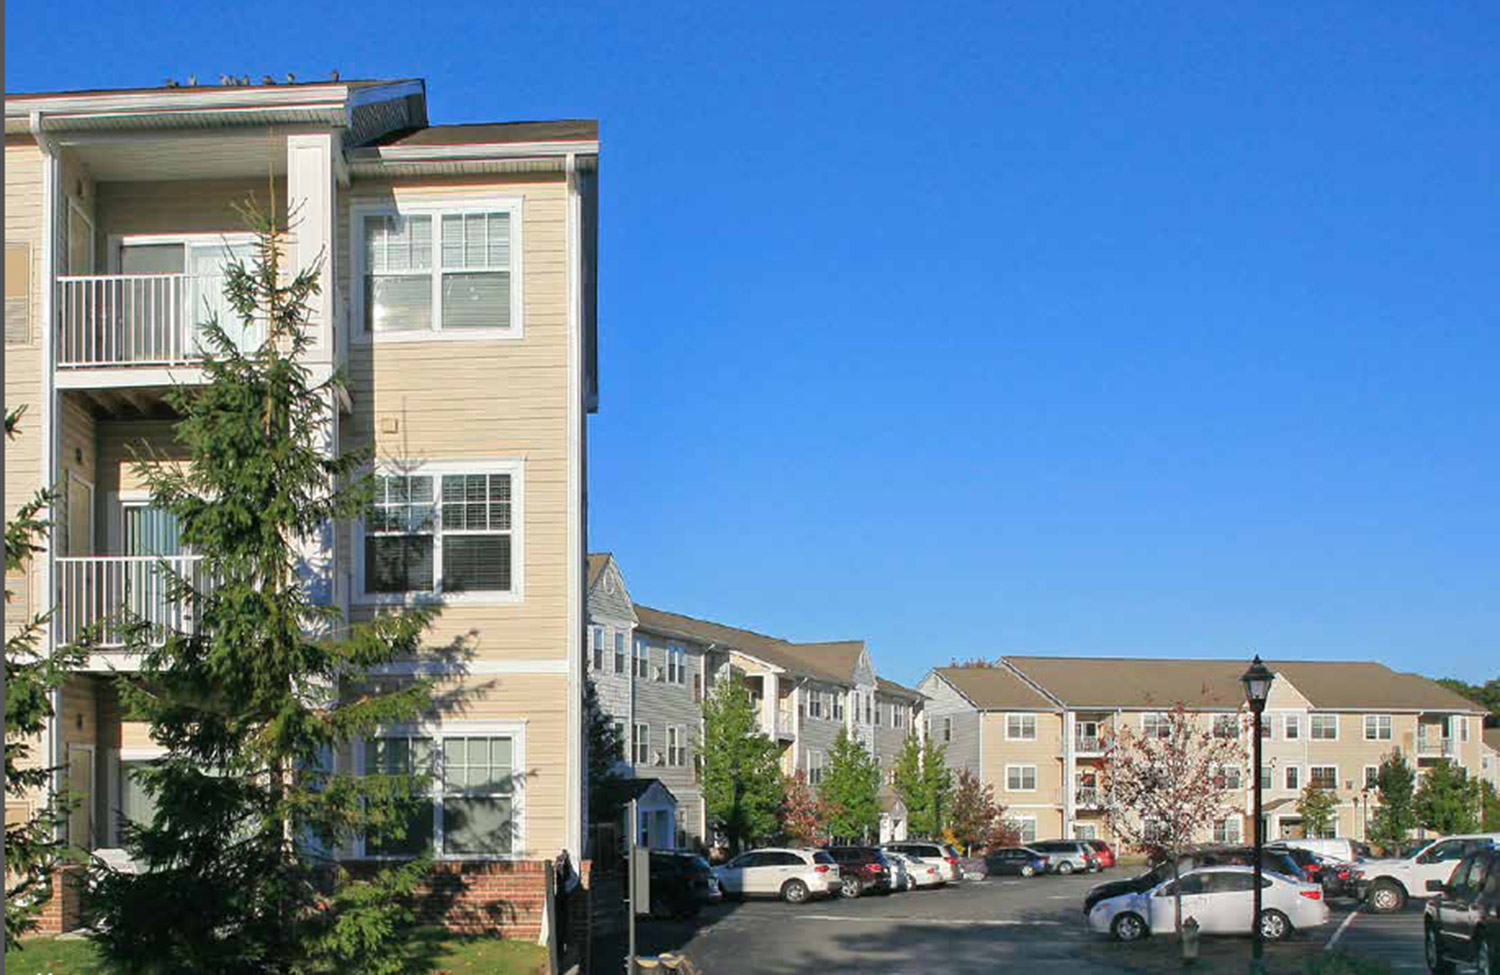 The Liberty Commons and Redbank Village apartment complexes in South Portland have been sold for $87.5 million to a Massachusetts investment firm.